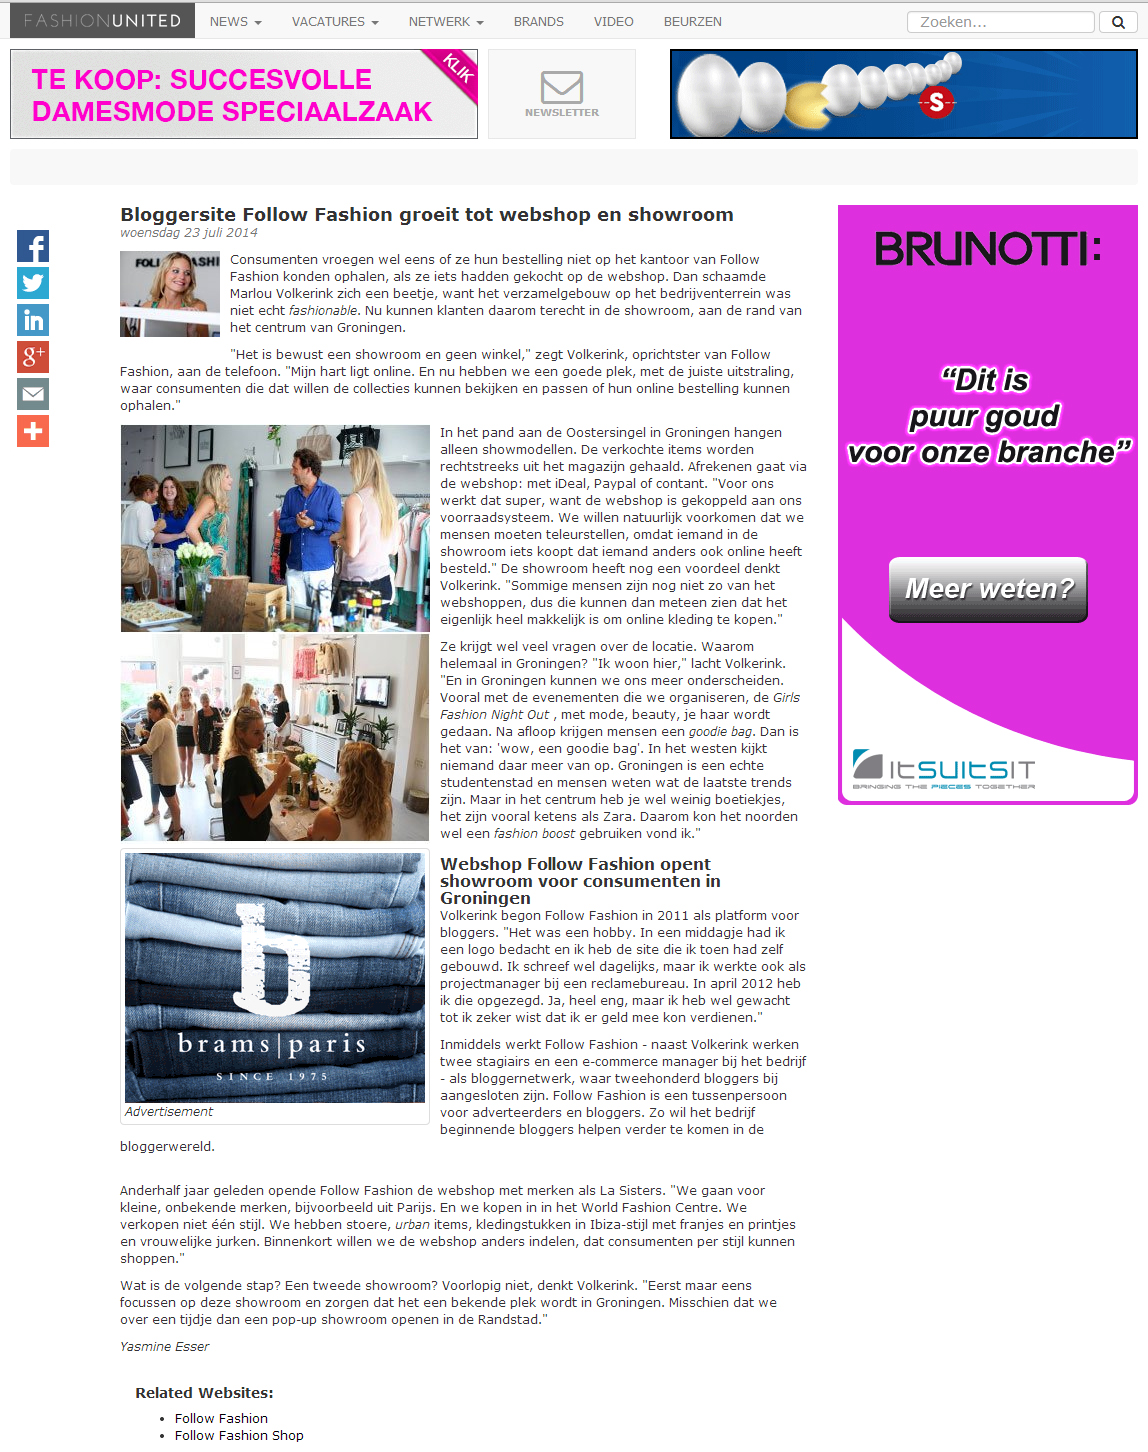 artikel op fashionunited